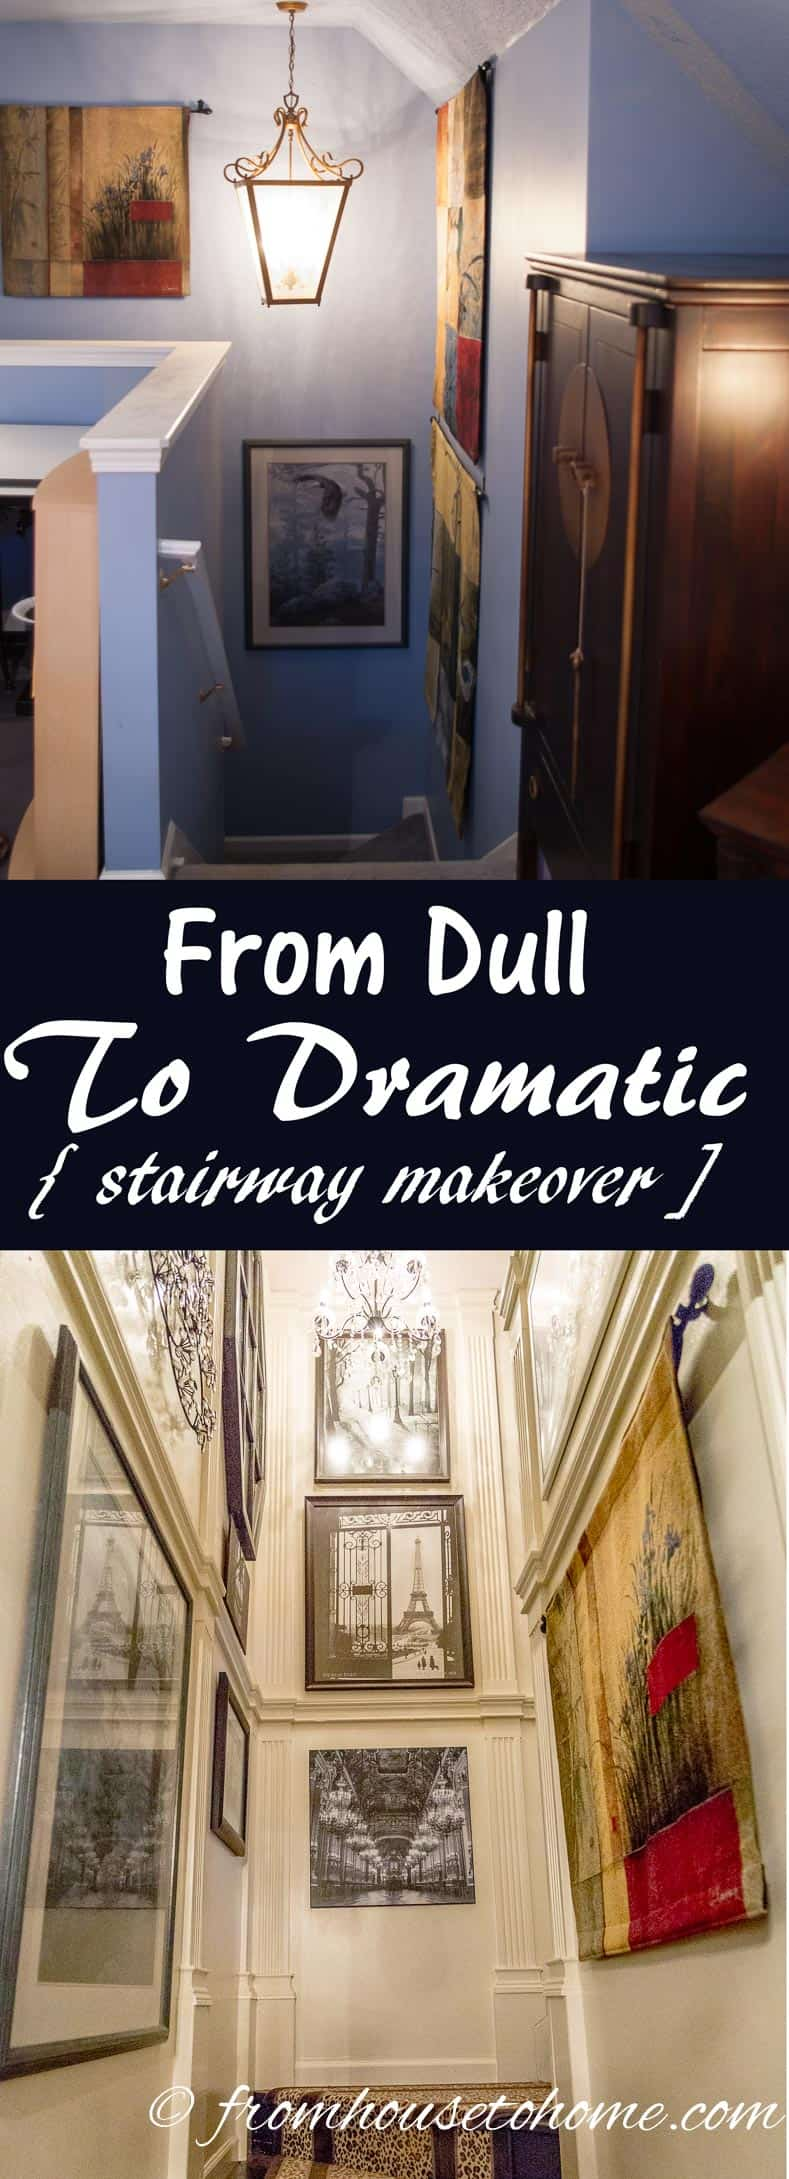 From Dull To Dramatic (A Stairway Makeover) | www.fromh2h.com